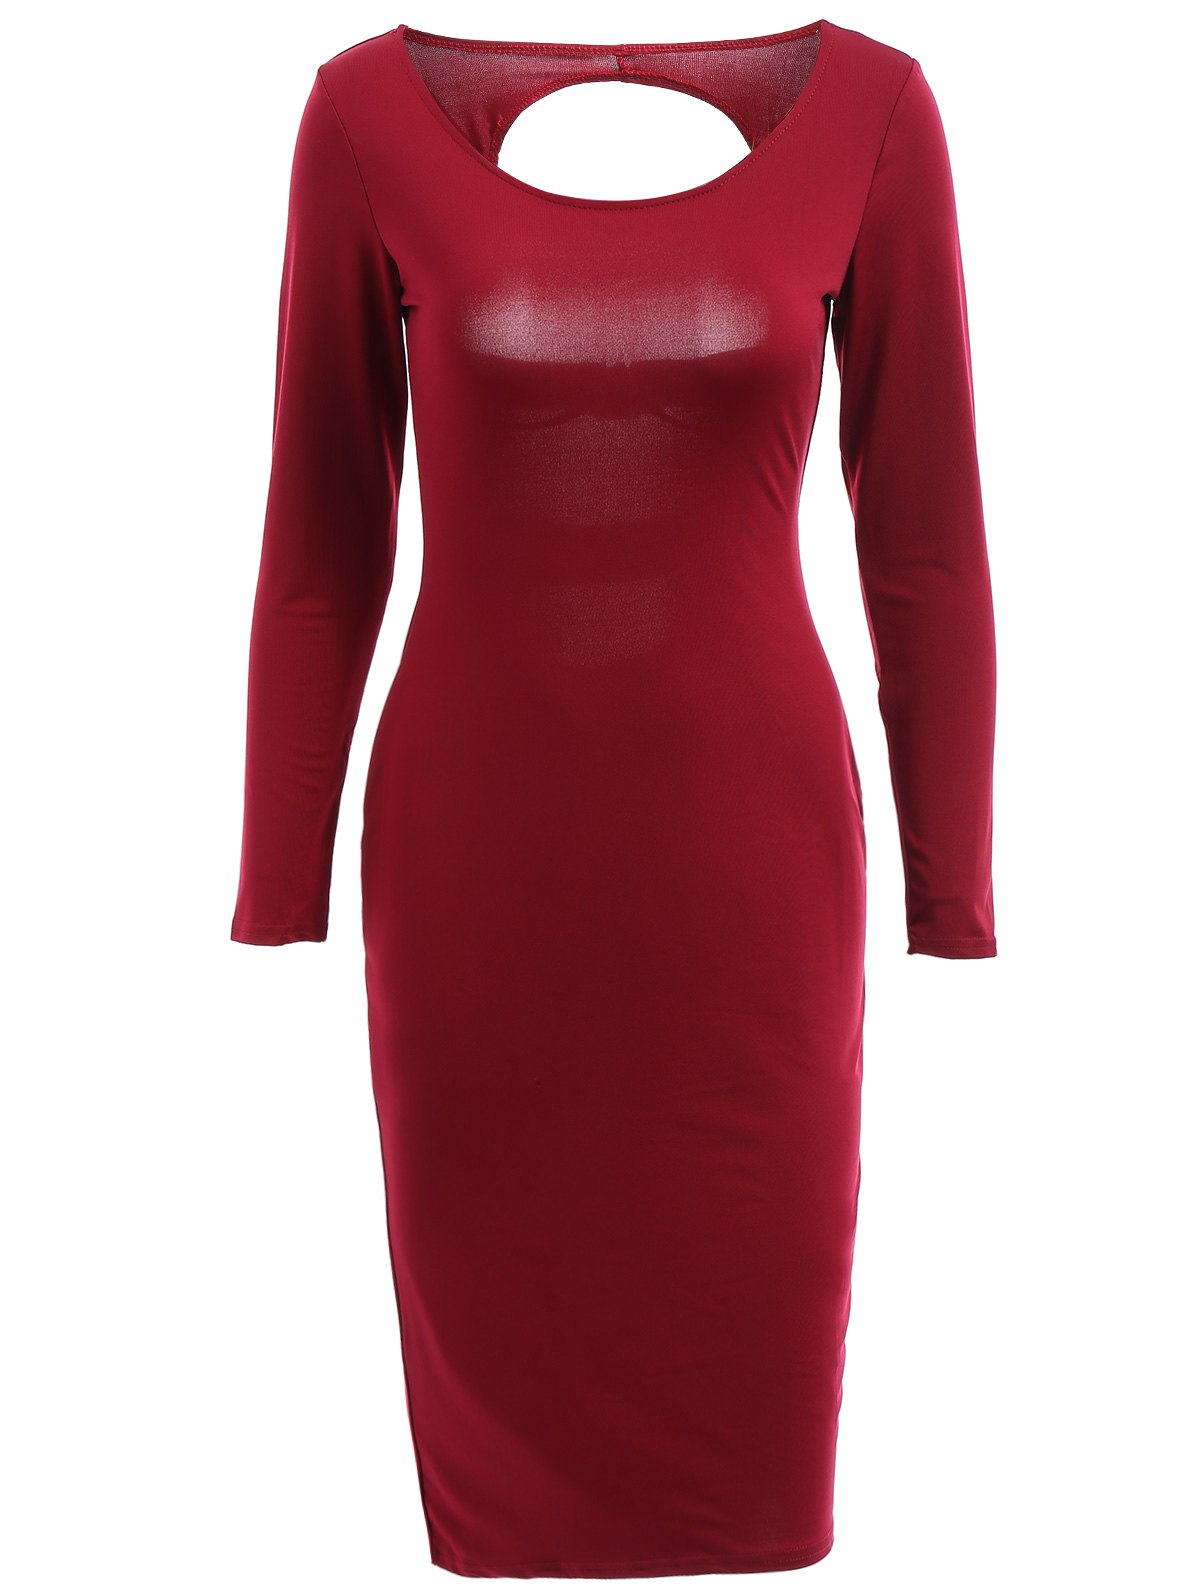 Alluring Scoop Neck Long Sleeve Cut Out Women's Bodycon Dress